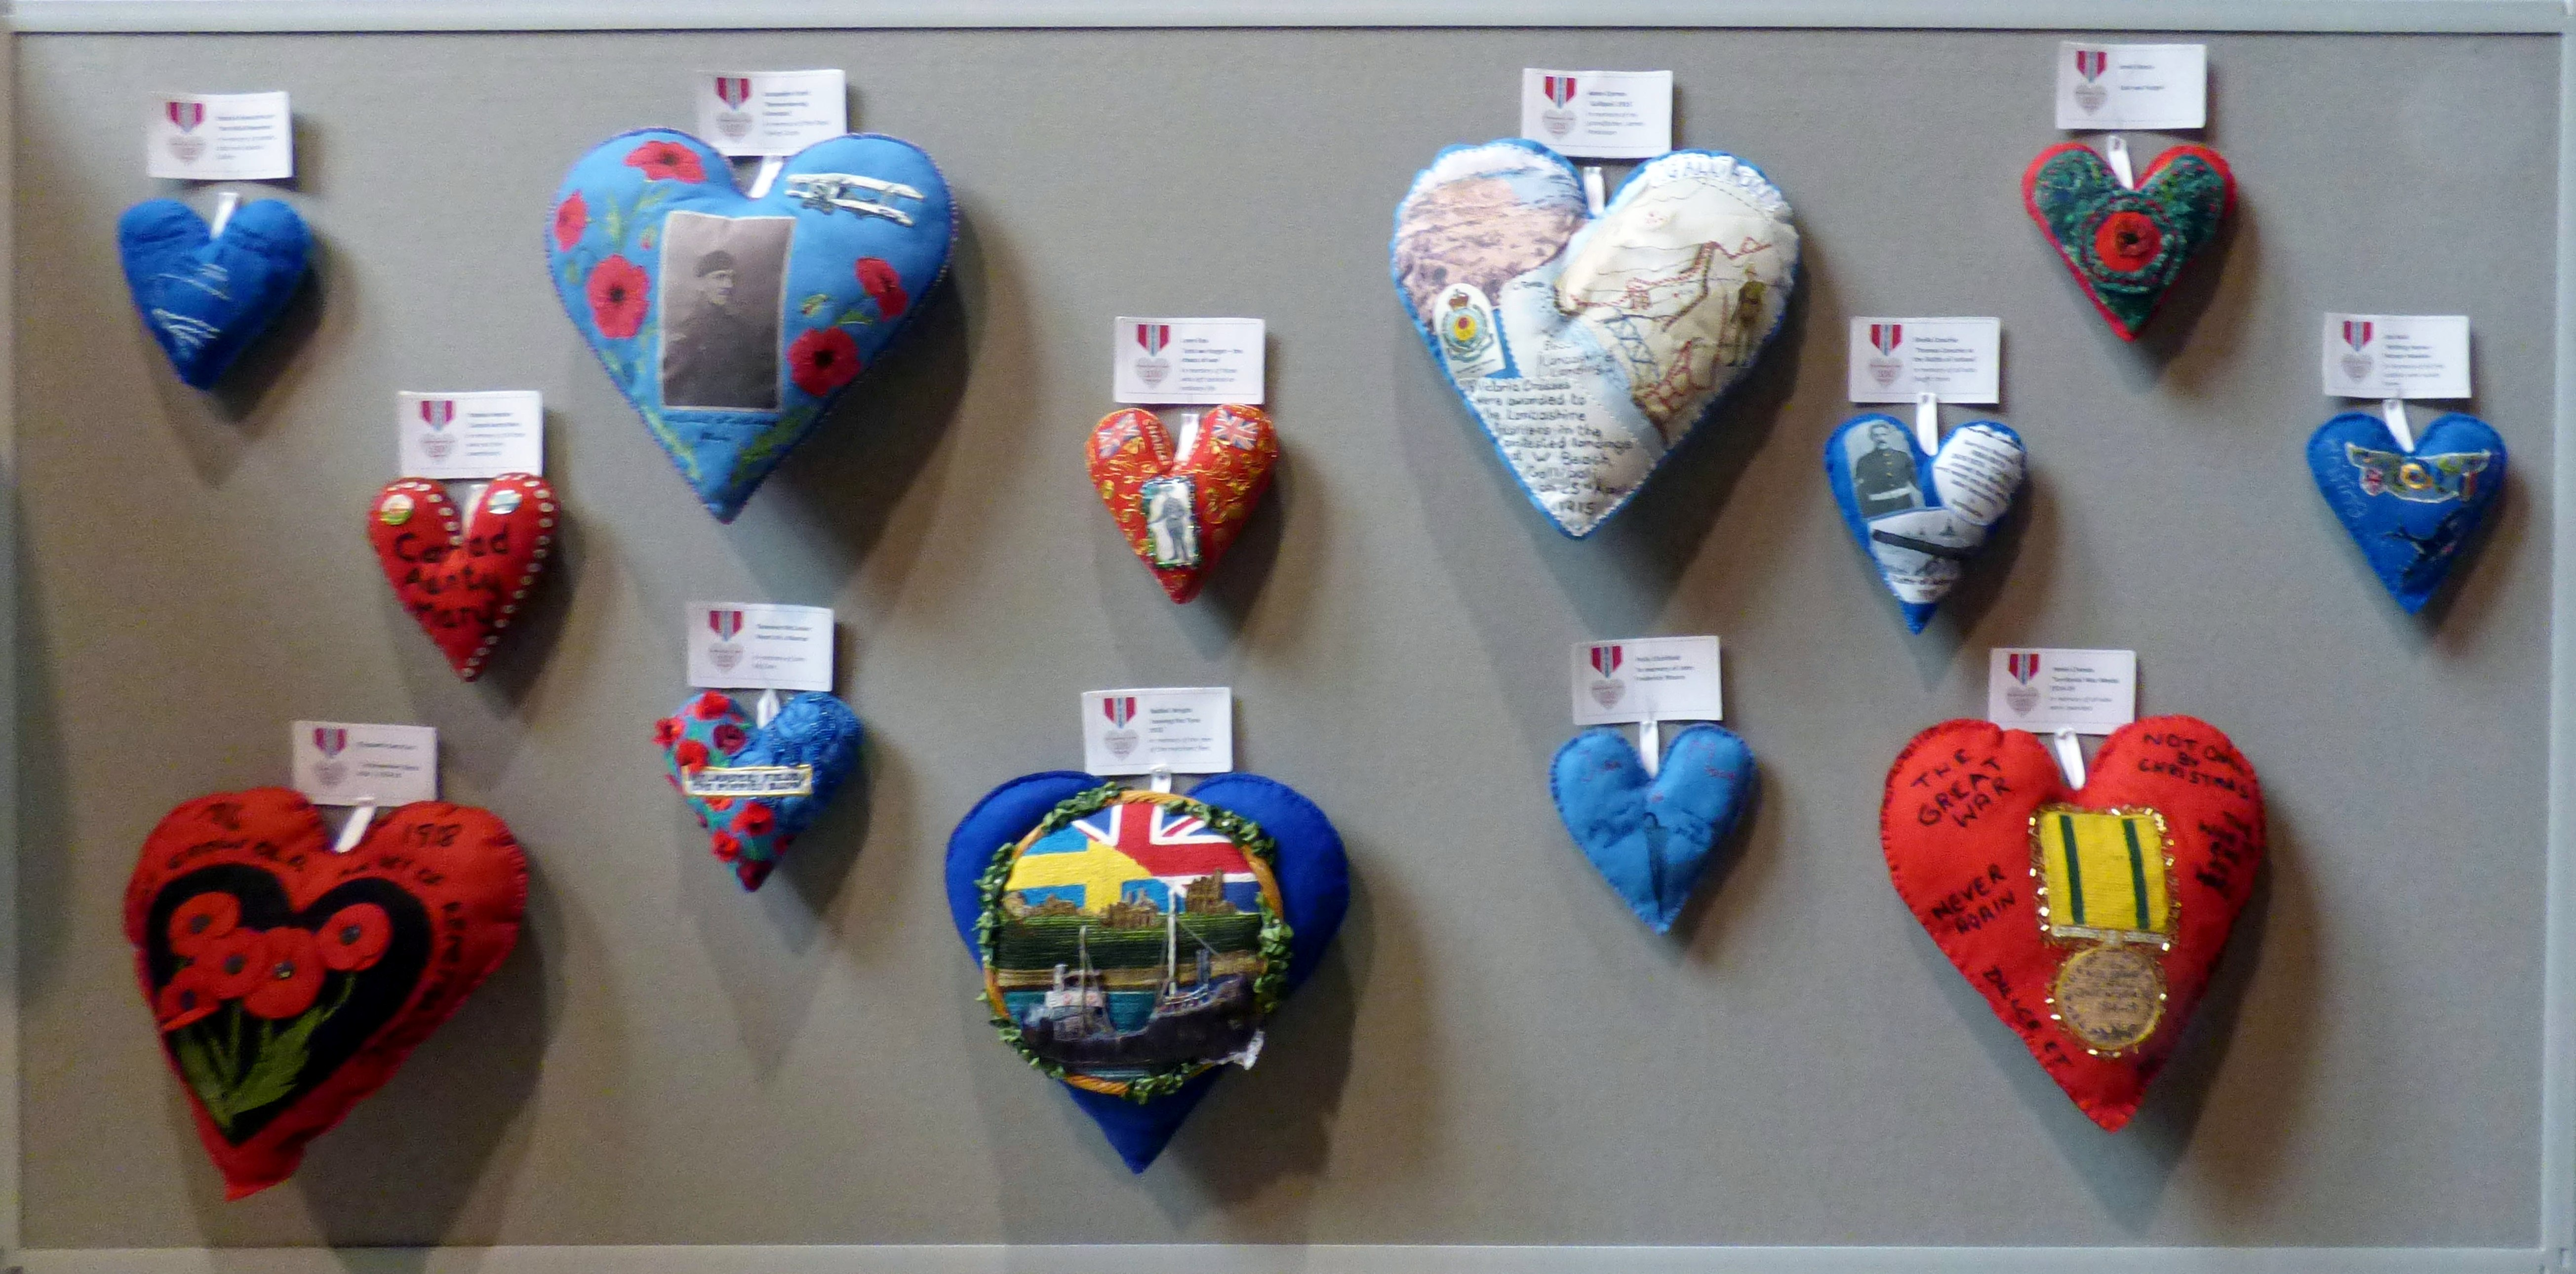 100 Hearts exhibition, Liverpool Cathedral, Sept 2018